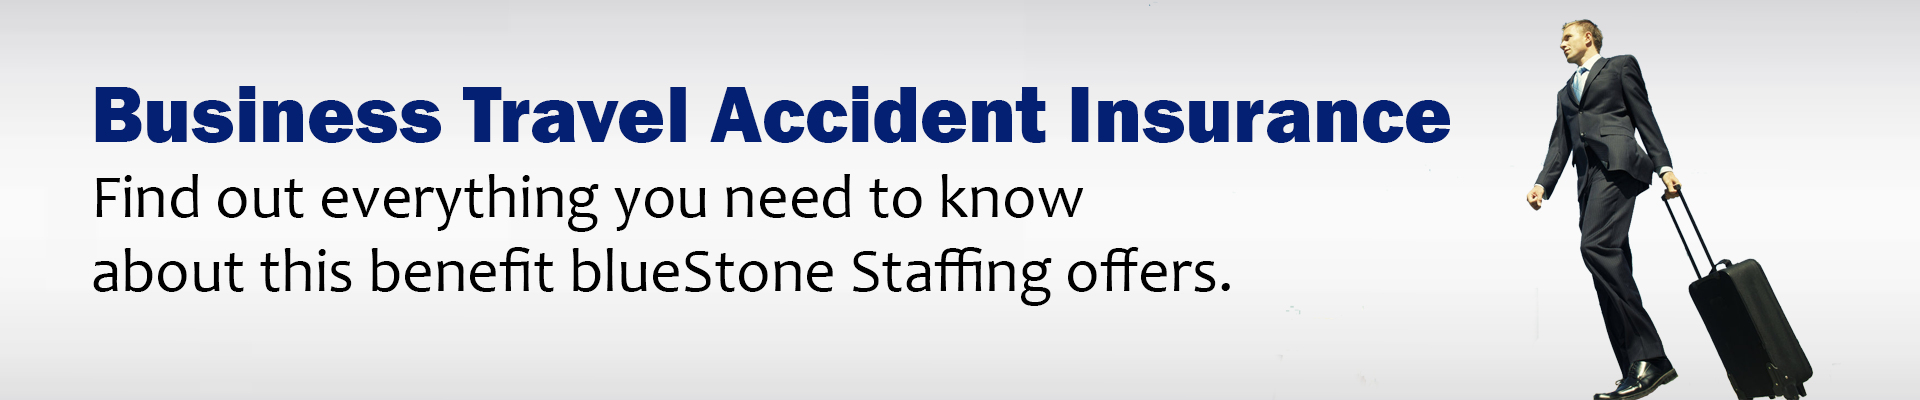 Business Travel Accident Insurance | blueStone Staffing Benefits | blueStone IT Staffing Agency